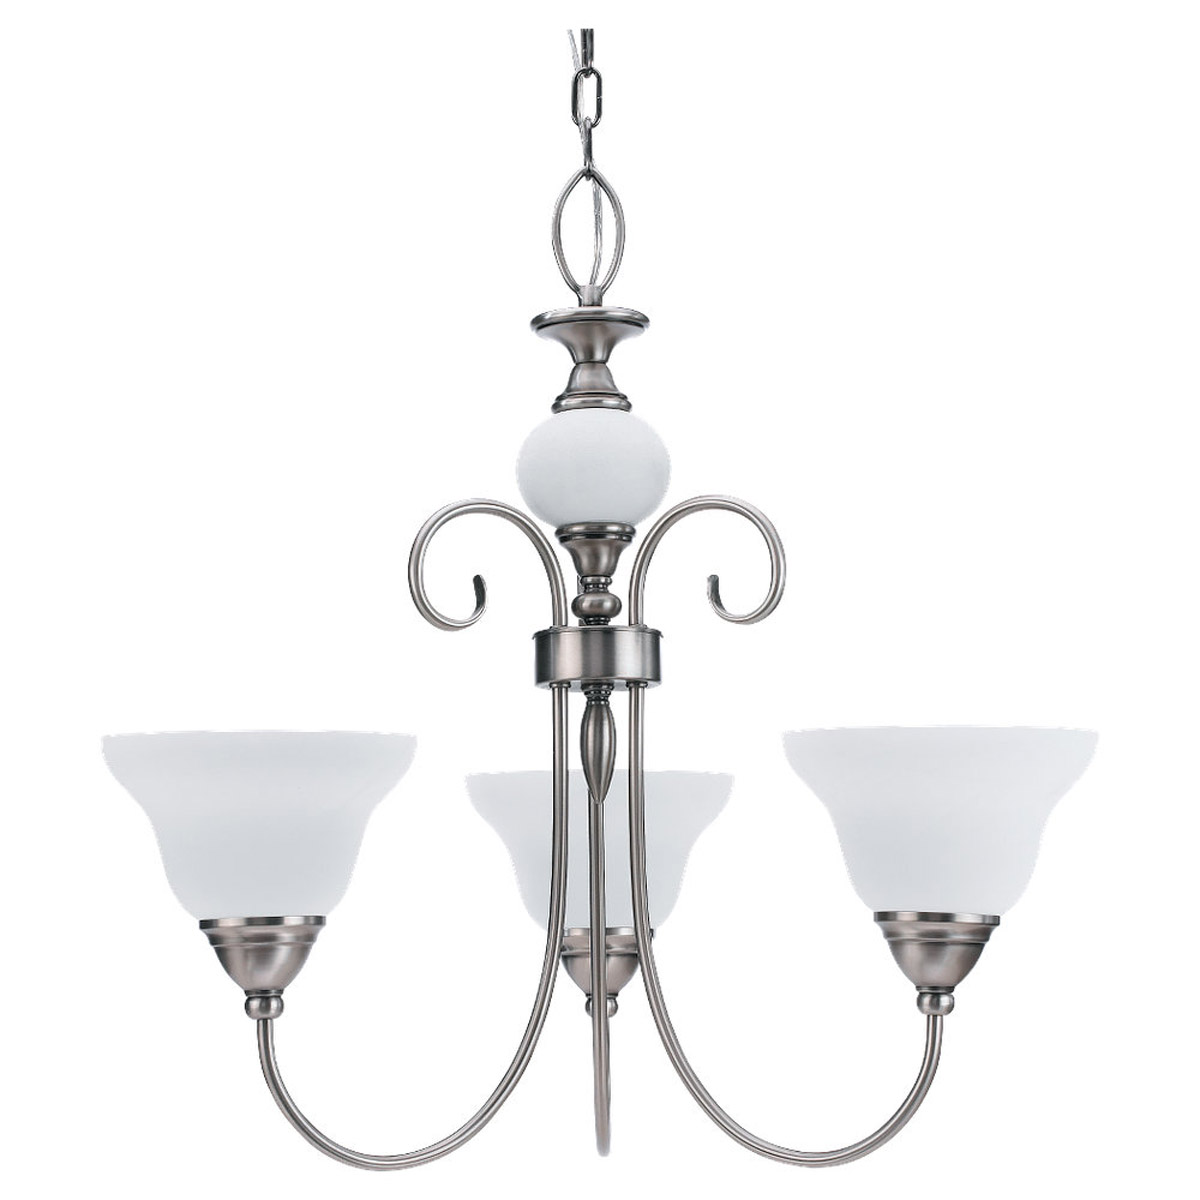 Sea Gull Lighting Montclaire 3 Light Chandelier in Antique Brushed Nickel 31105-965